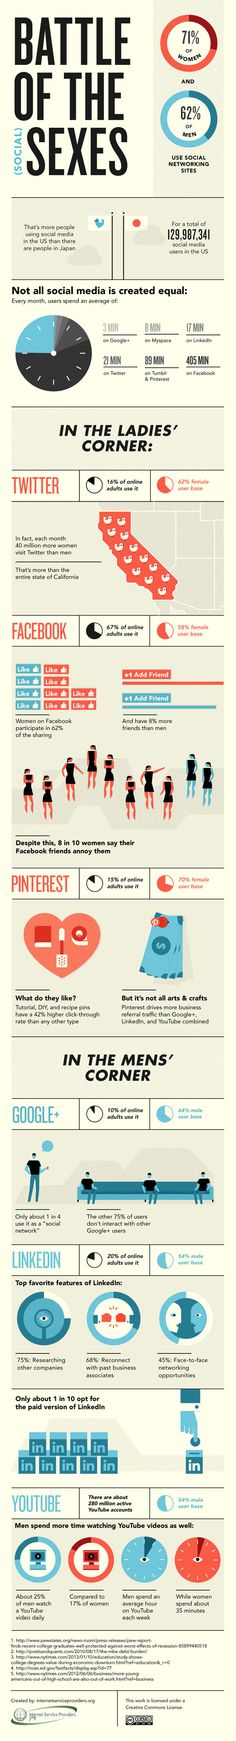 Battle of the sexes: infographic mannen-vs-vrouwen on social media